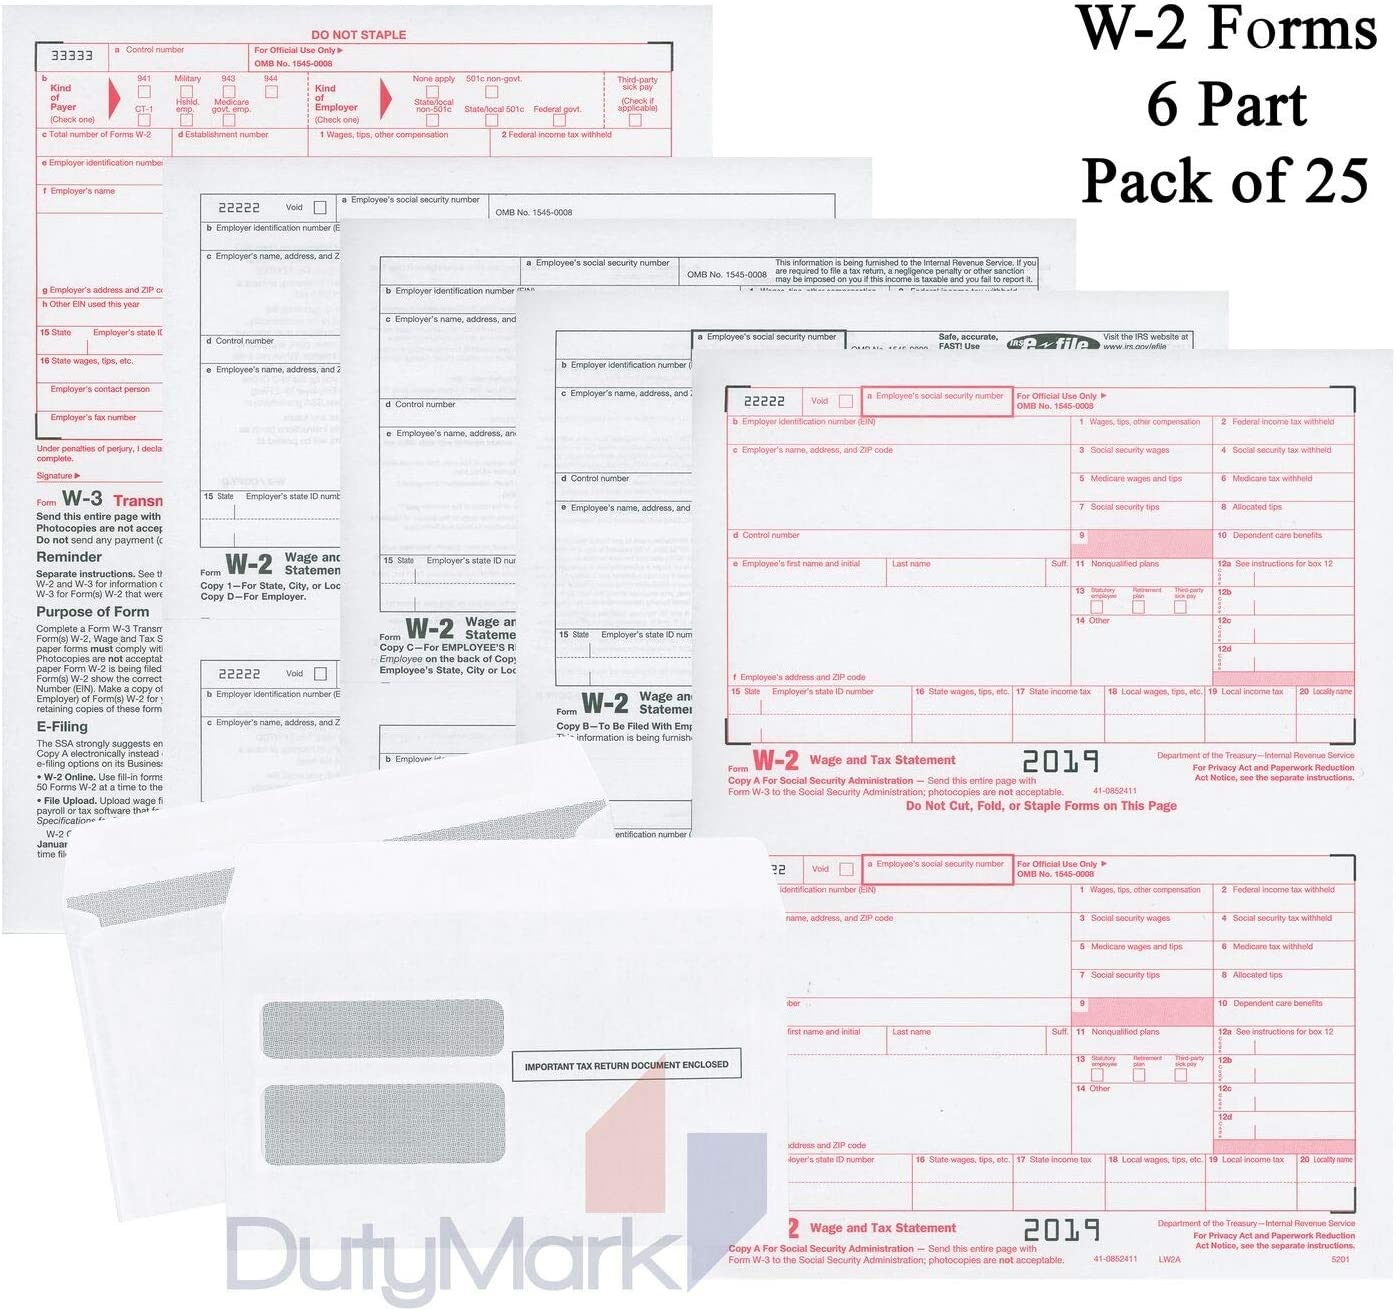 (2019) W-2 Tax Forms (6-Part) Kit for 25 Employees with Self-Seal Envelopes and W-3 Transmittal for QuickBooks and Accounting Software, 2019 W2 71UiBCdXPUL